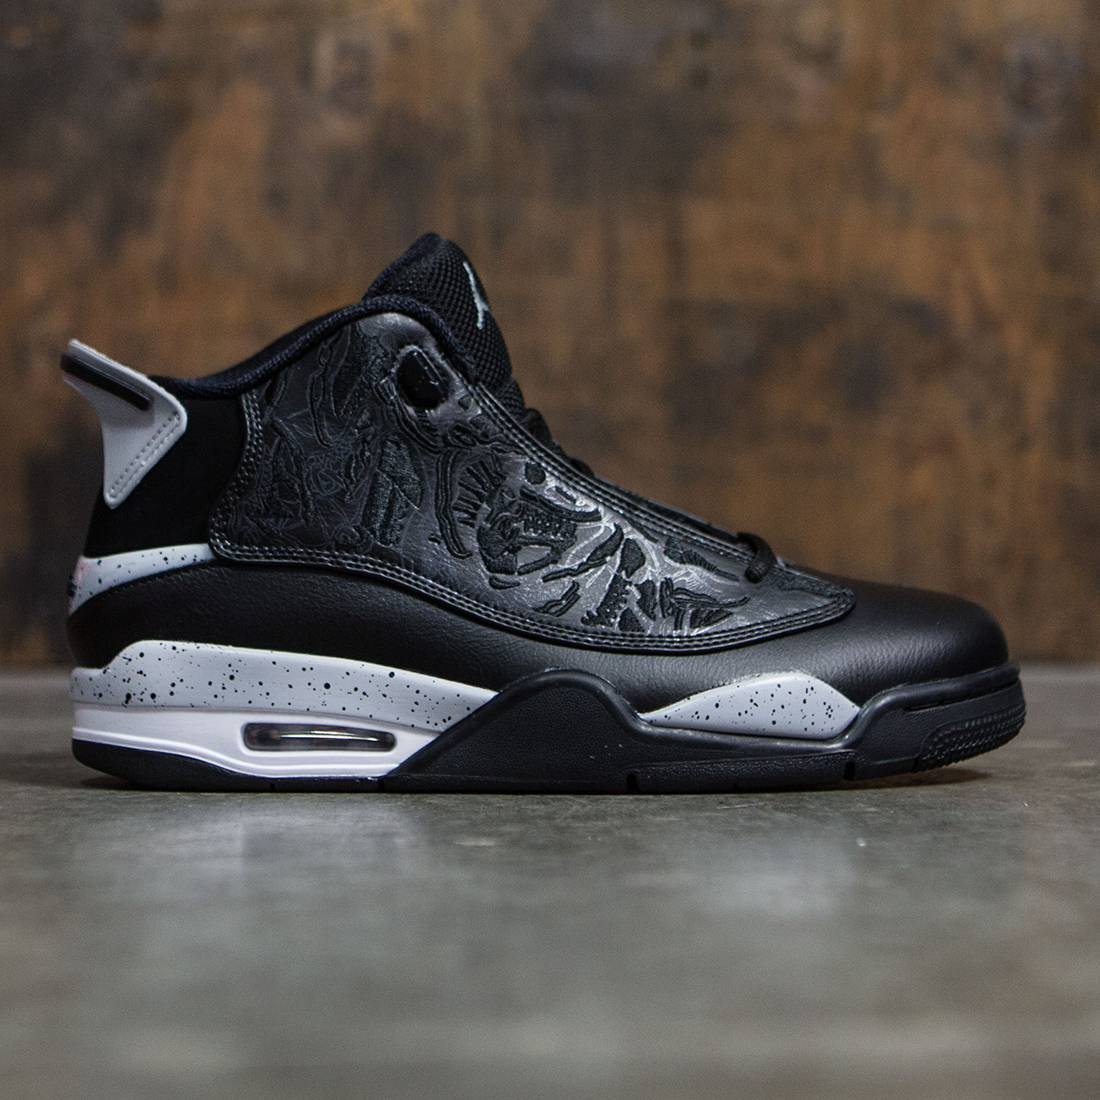 official photos 68168 33426 air jordan dub zero  jordan men air jordan dub zero (black wolf grey white)